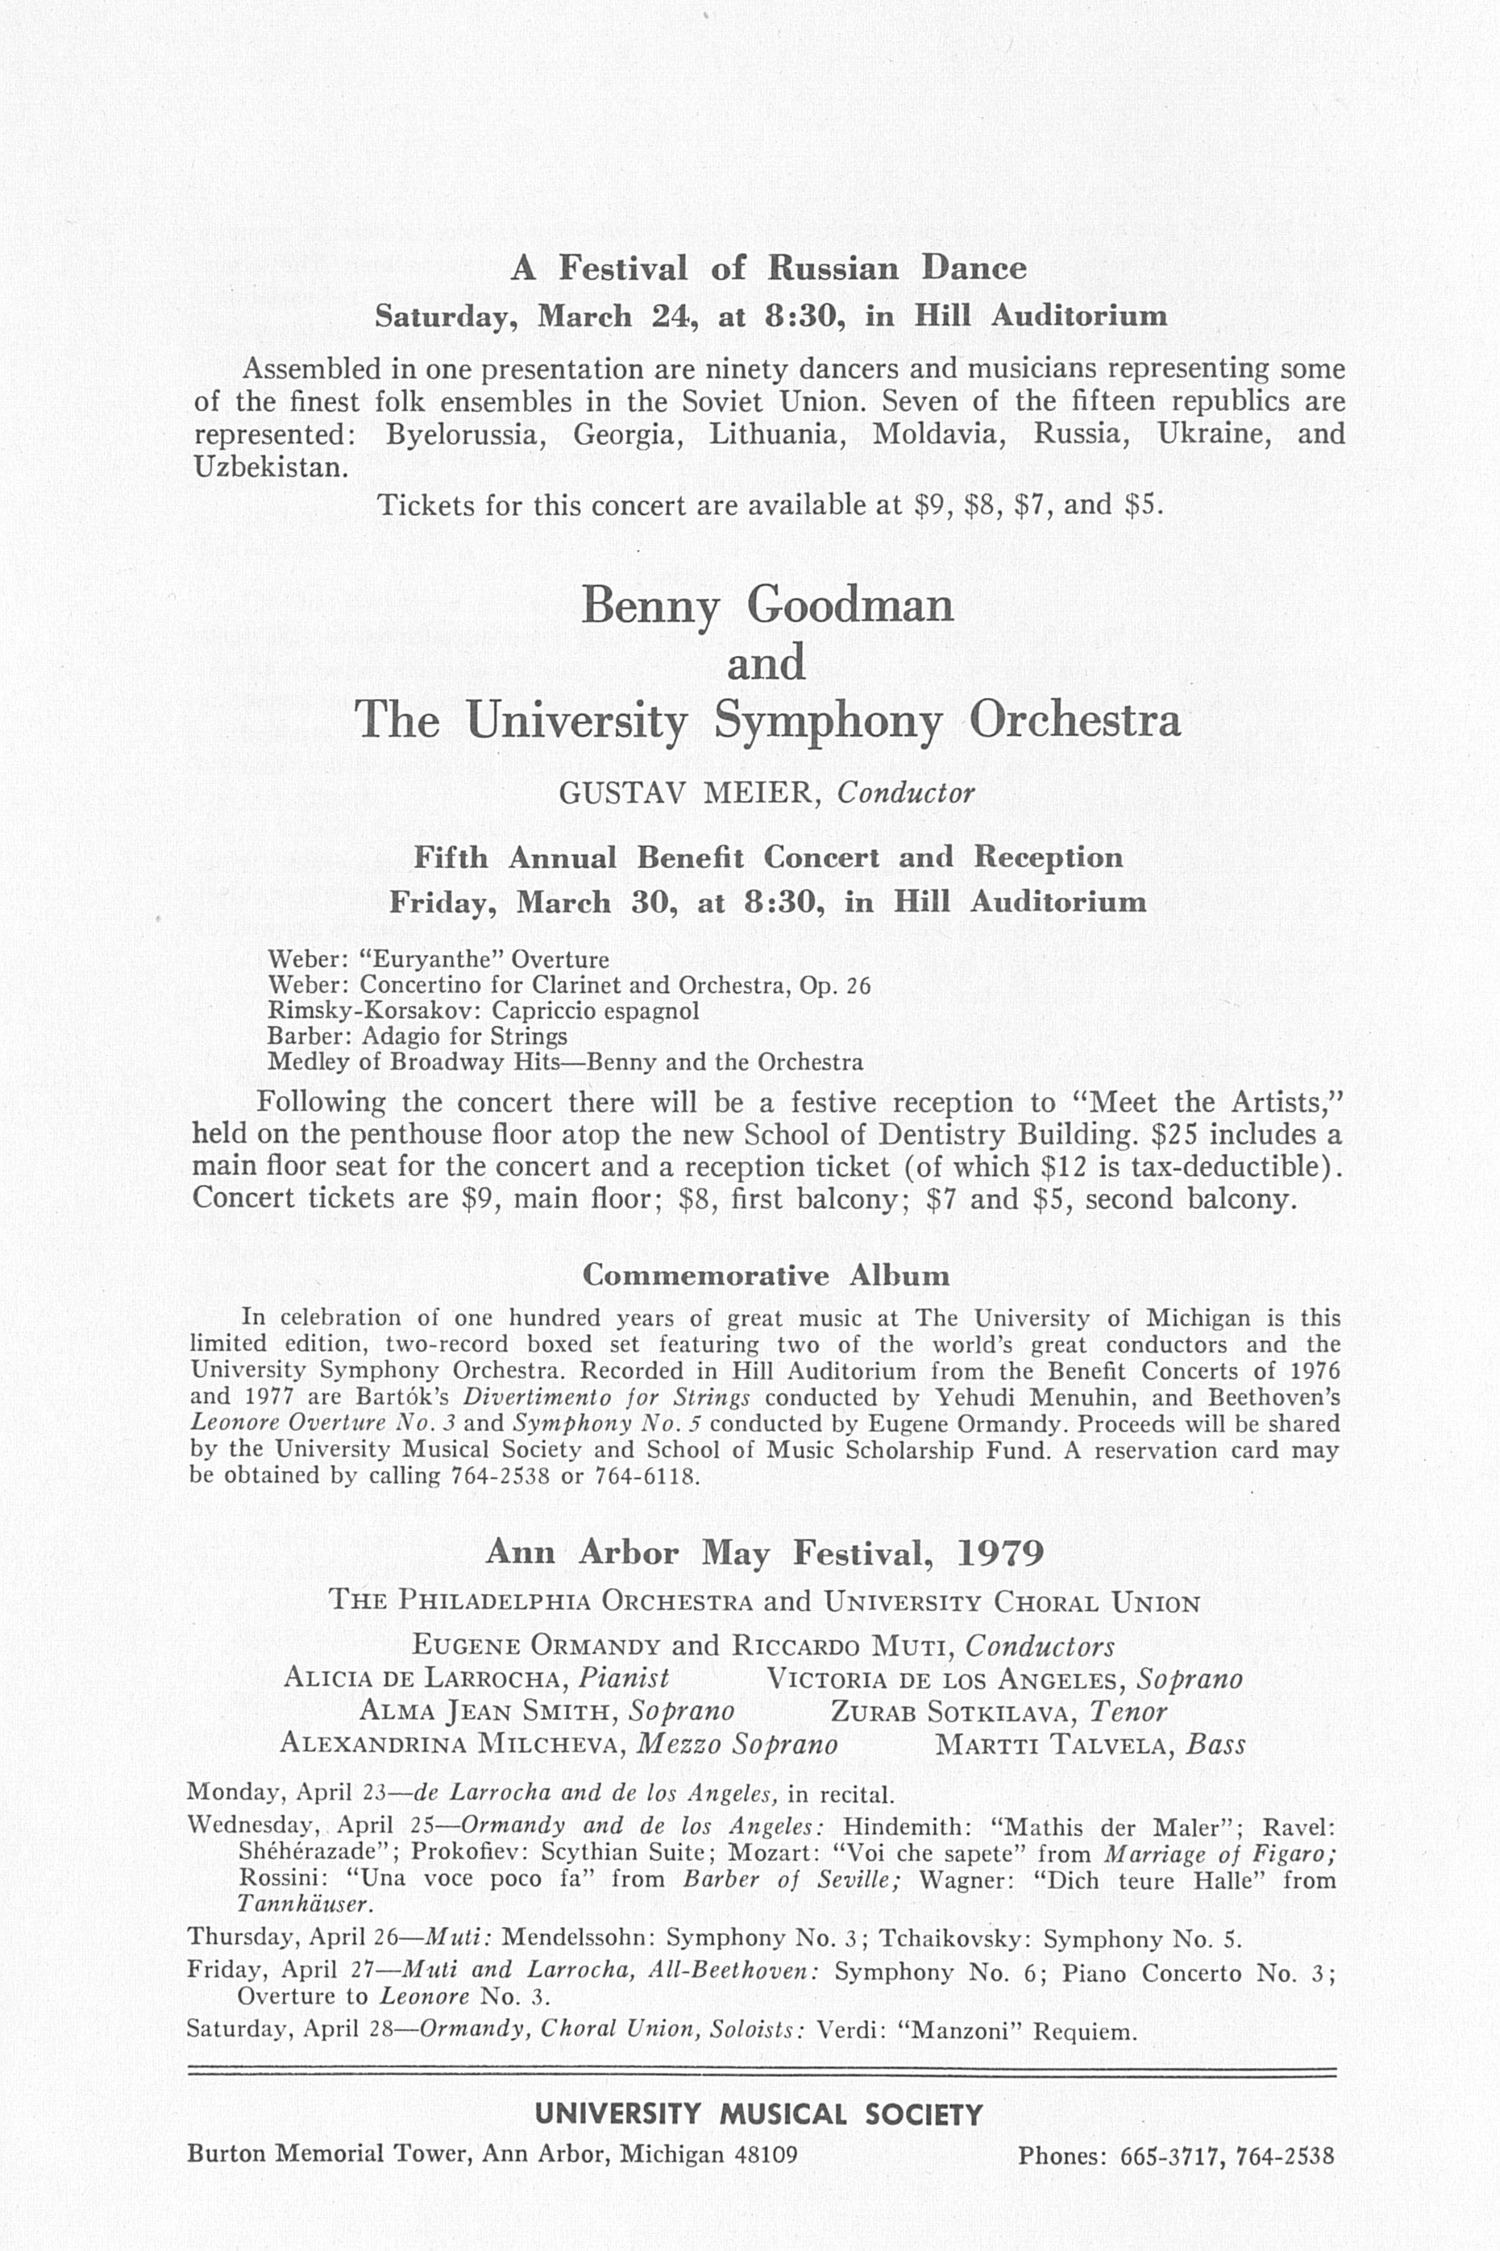 UMS Concert Program, March 21, 1979: Guarneri String Quartet --  image